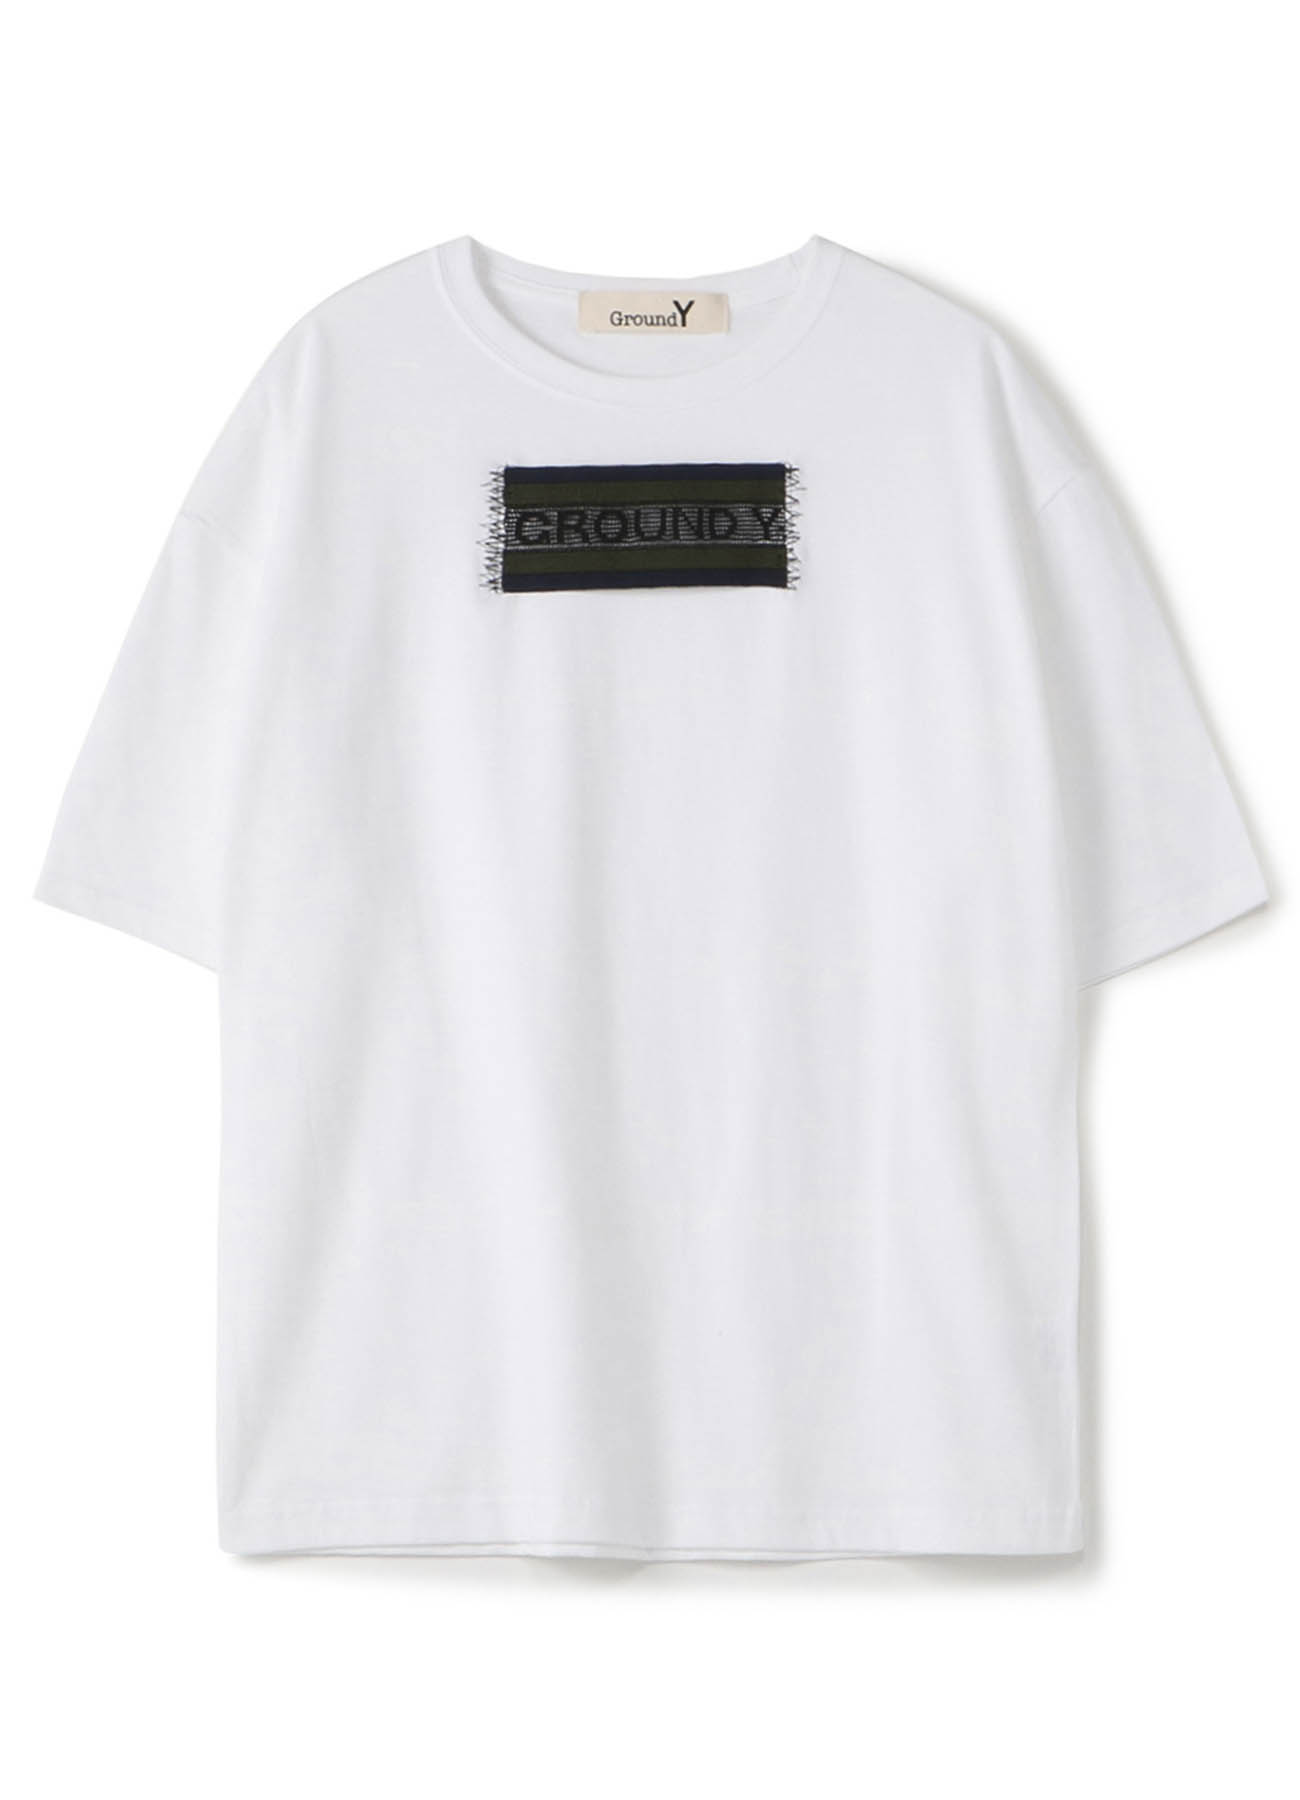 Tape 5.6oz cotton Jersey Original tape Big T-Shirt A